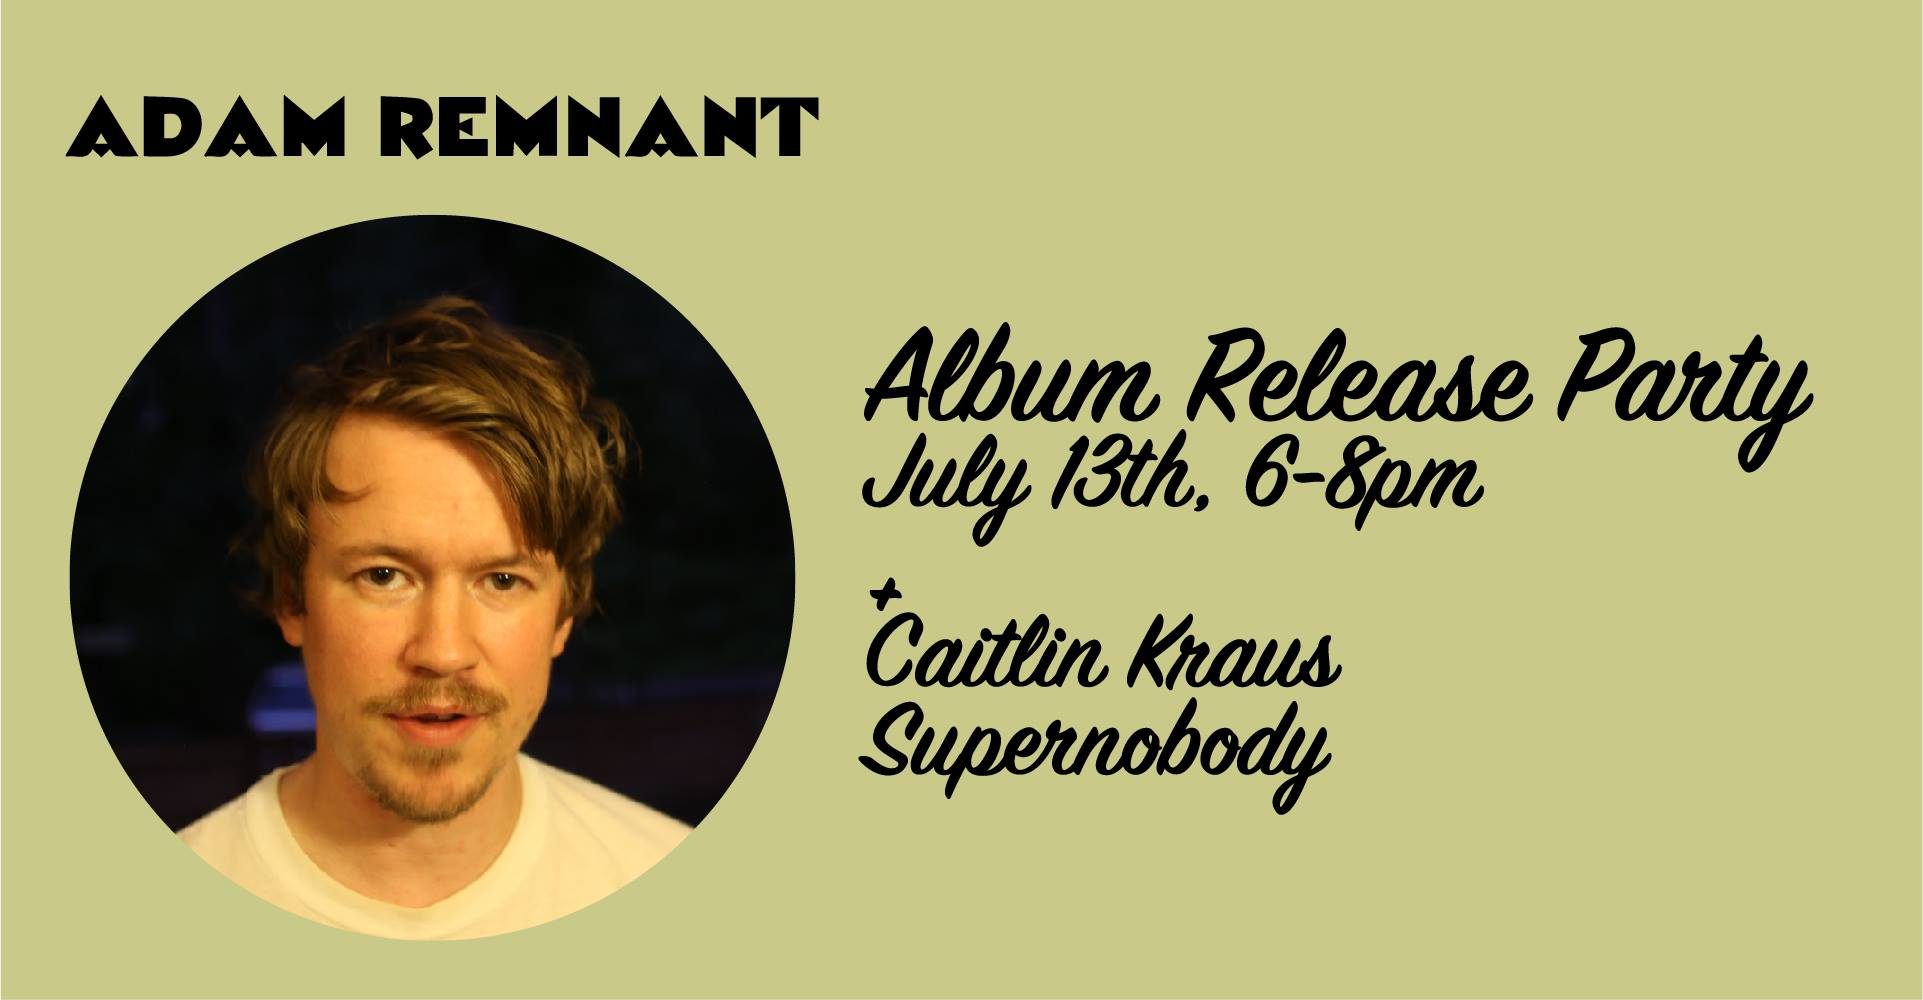 Adam Remnant's Album Release Party